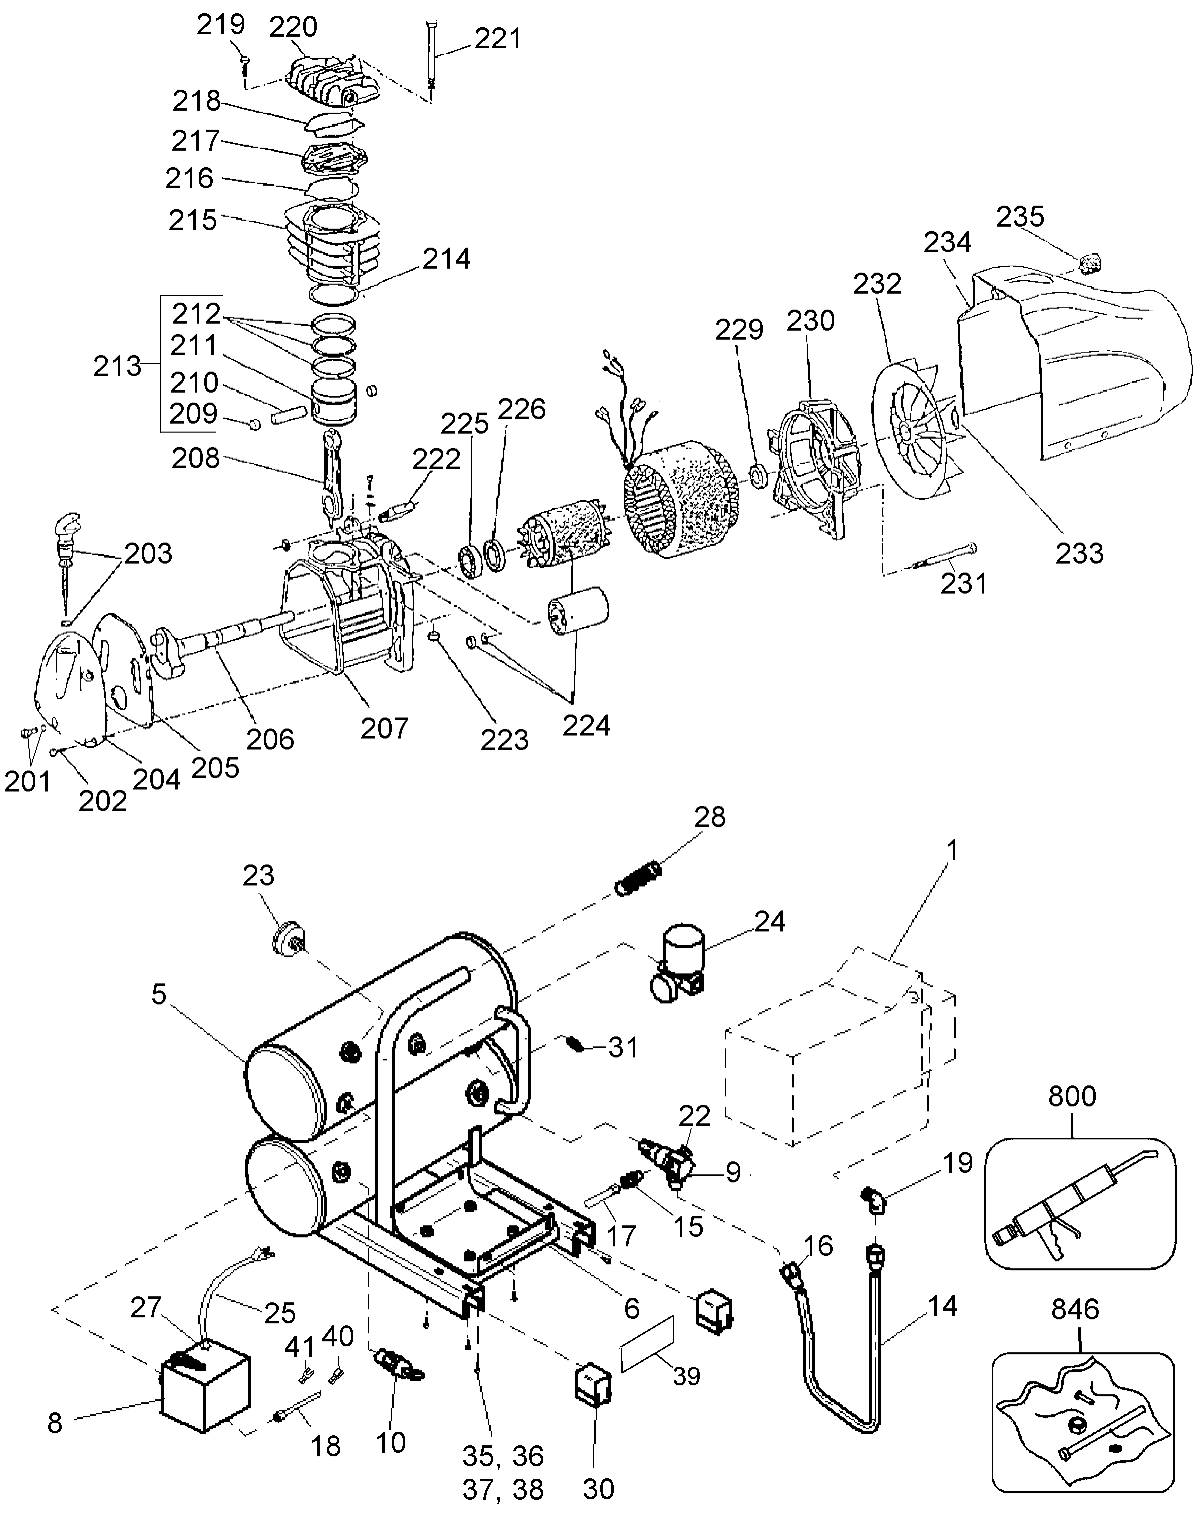 D55151 - DeWalt Parts schematic